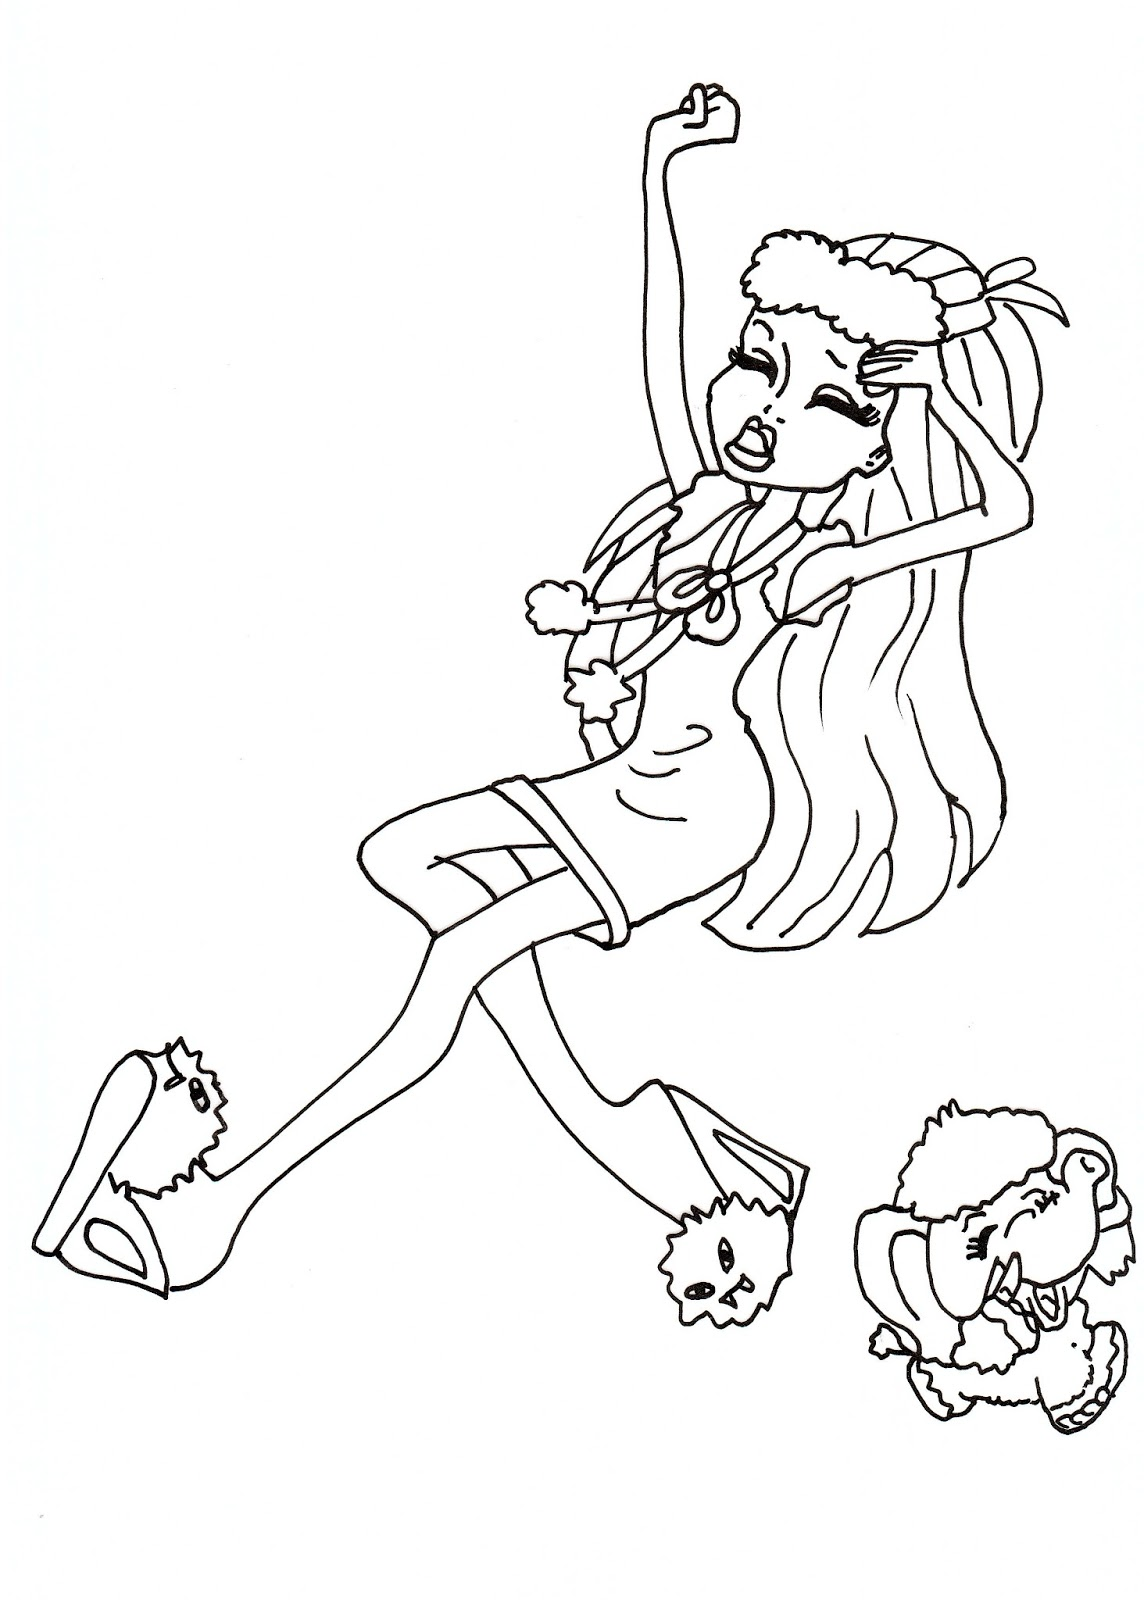 Abbey Dead Tired Coloring Sheet